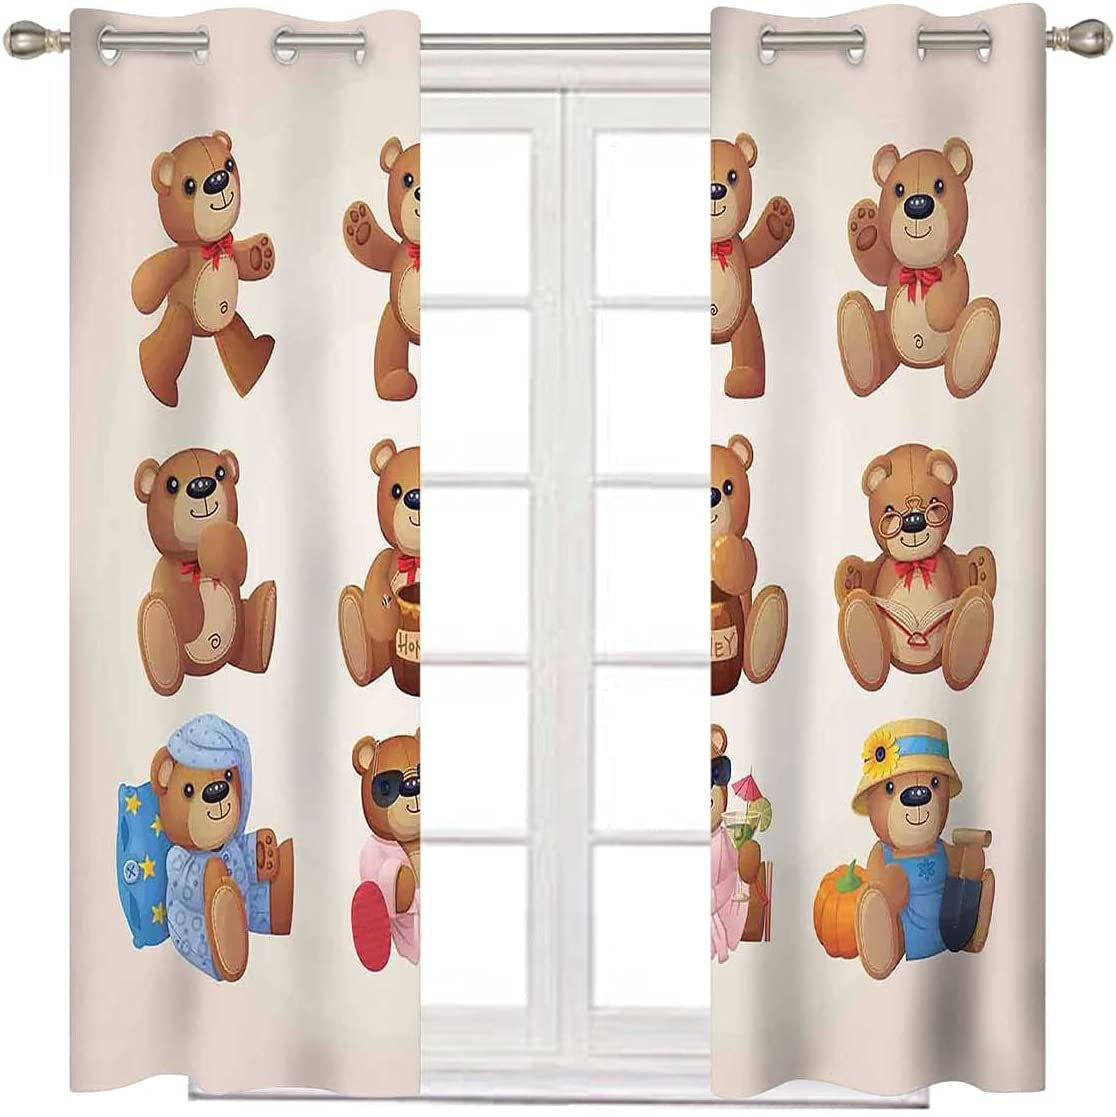 Max 57% OFF Bedroom Blackout Curtains 96 Translated Inch Long Bear Design K Teddy Kids